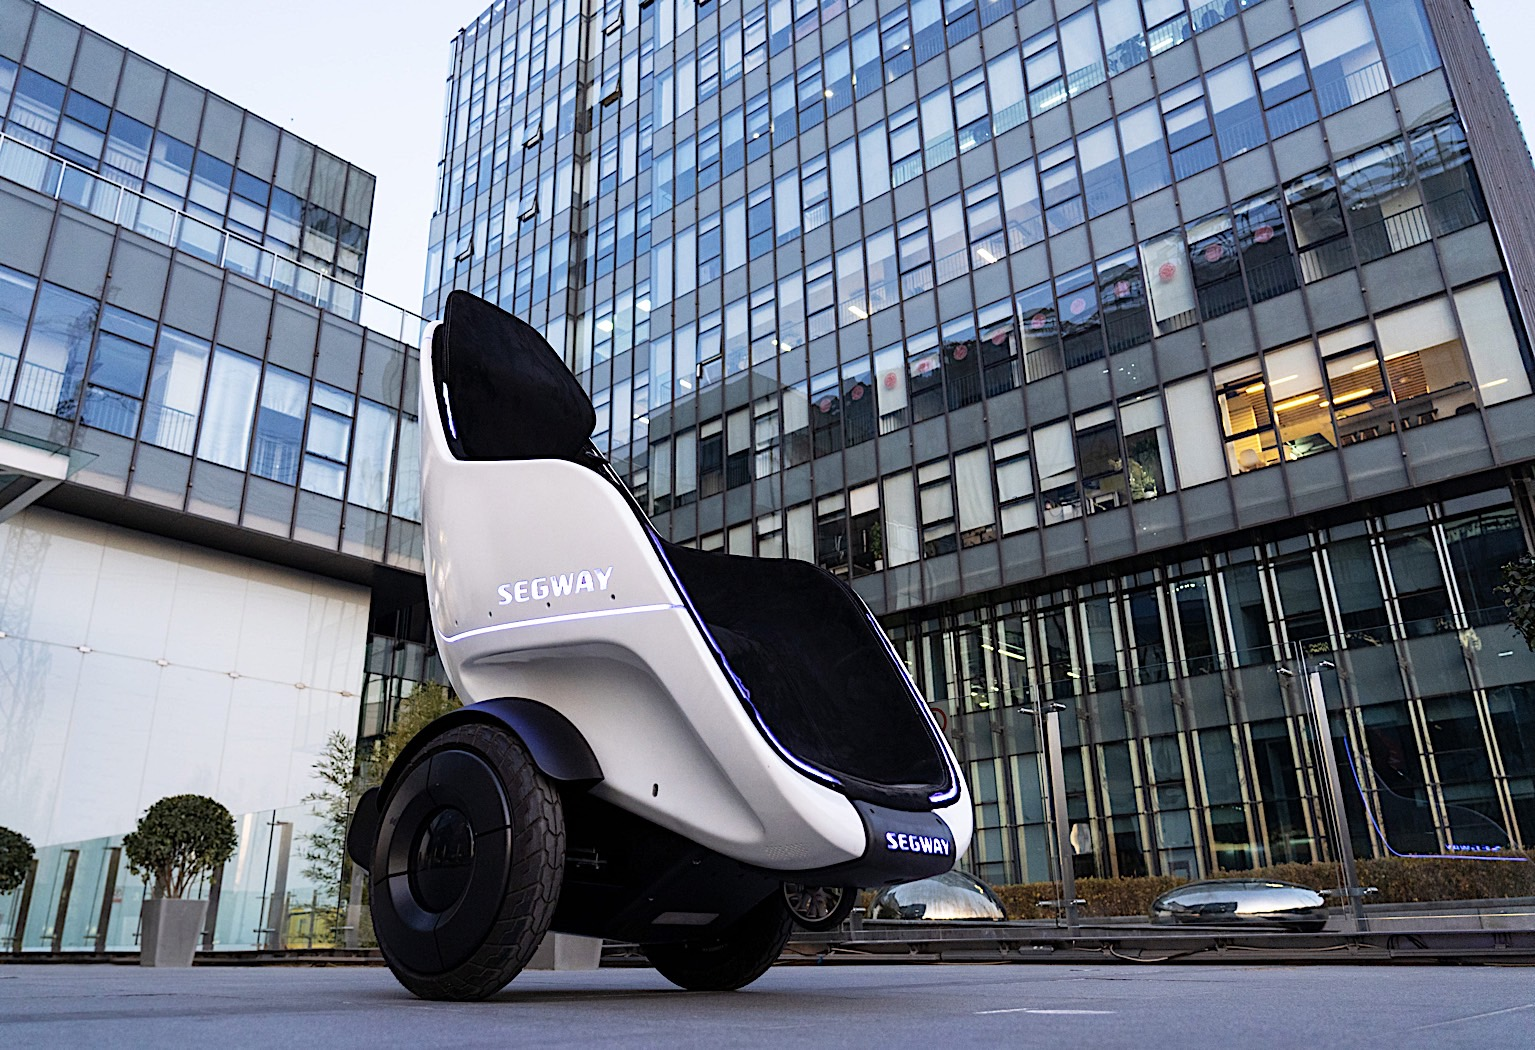 Segway-Ninebot unveils a transportation pod and new kick scooter